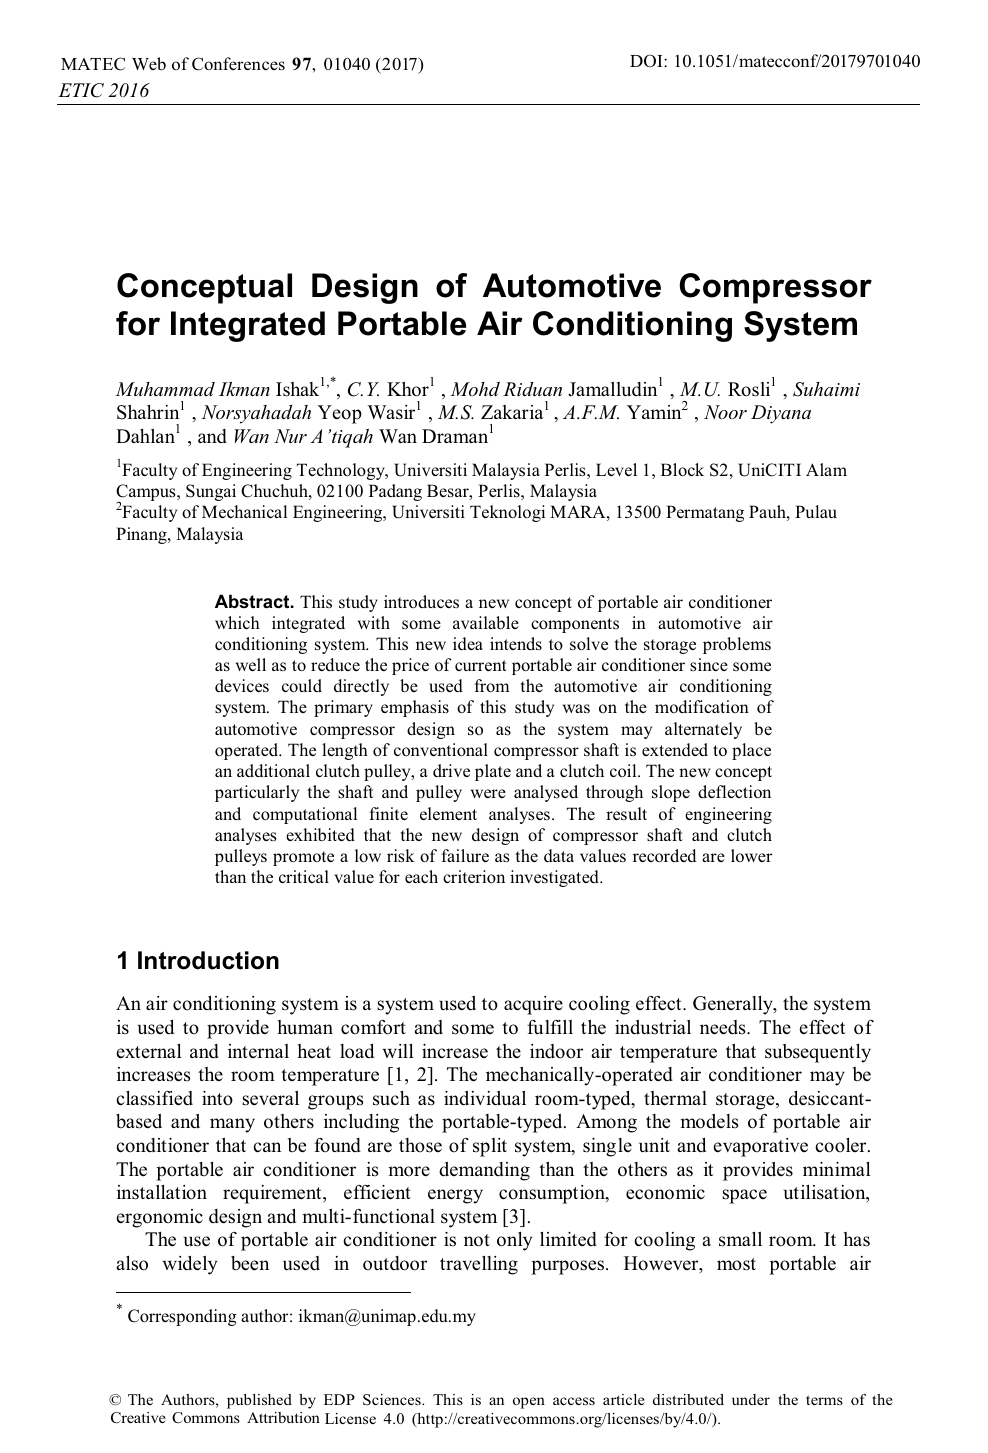 Conceptual Design Of Automotive Compressor For Integrated Portable Air Conditioning System Topic Of Research Paper In Medical Engineering Download Scholarly Article Pdf And Read For Free On Cyberleninka Open Science Hub